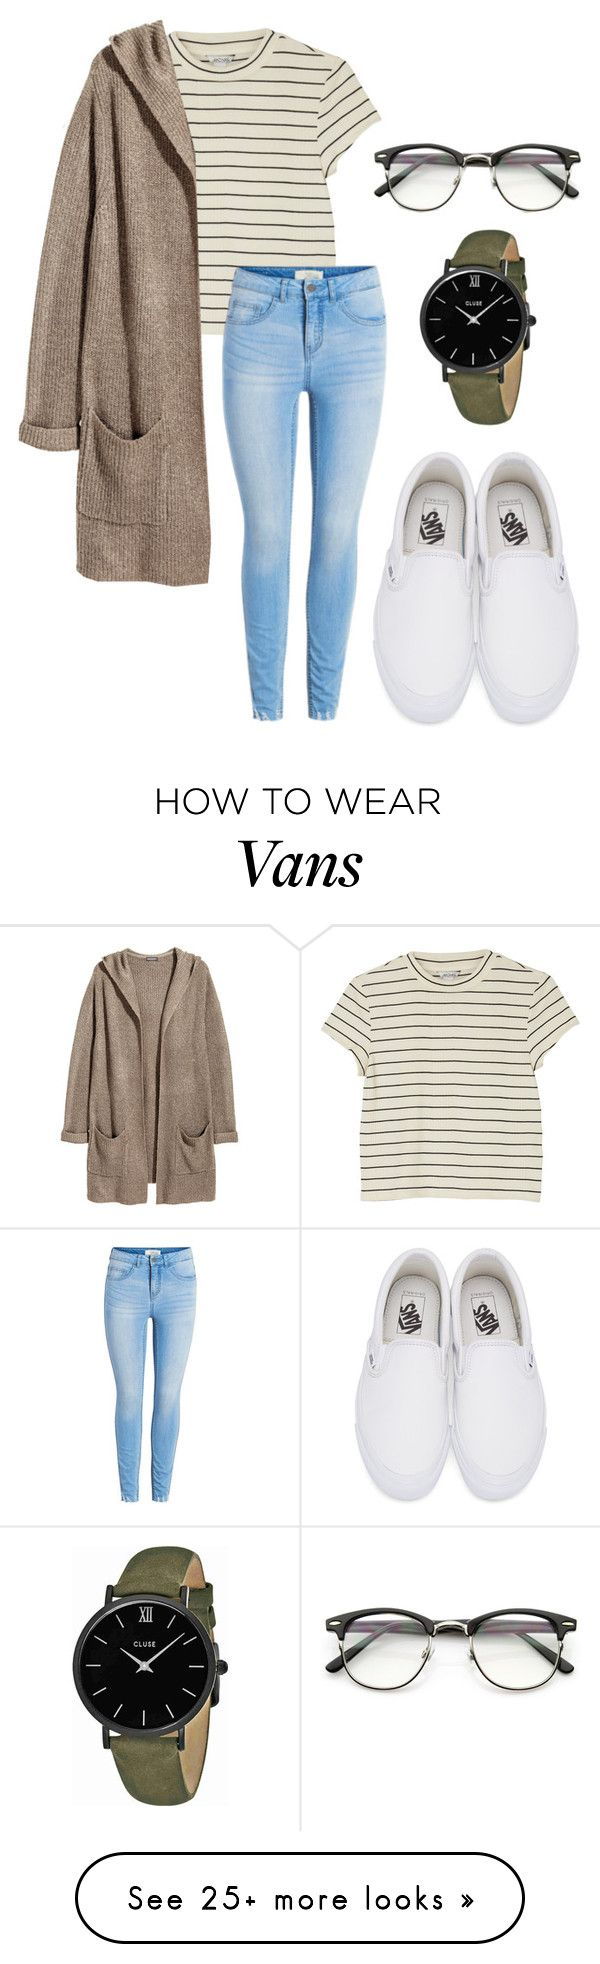 """who do you admire???"" by annayalee-gerber on Polyvore featuring Vans, Monki, H&M and CLUSE"